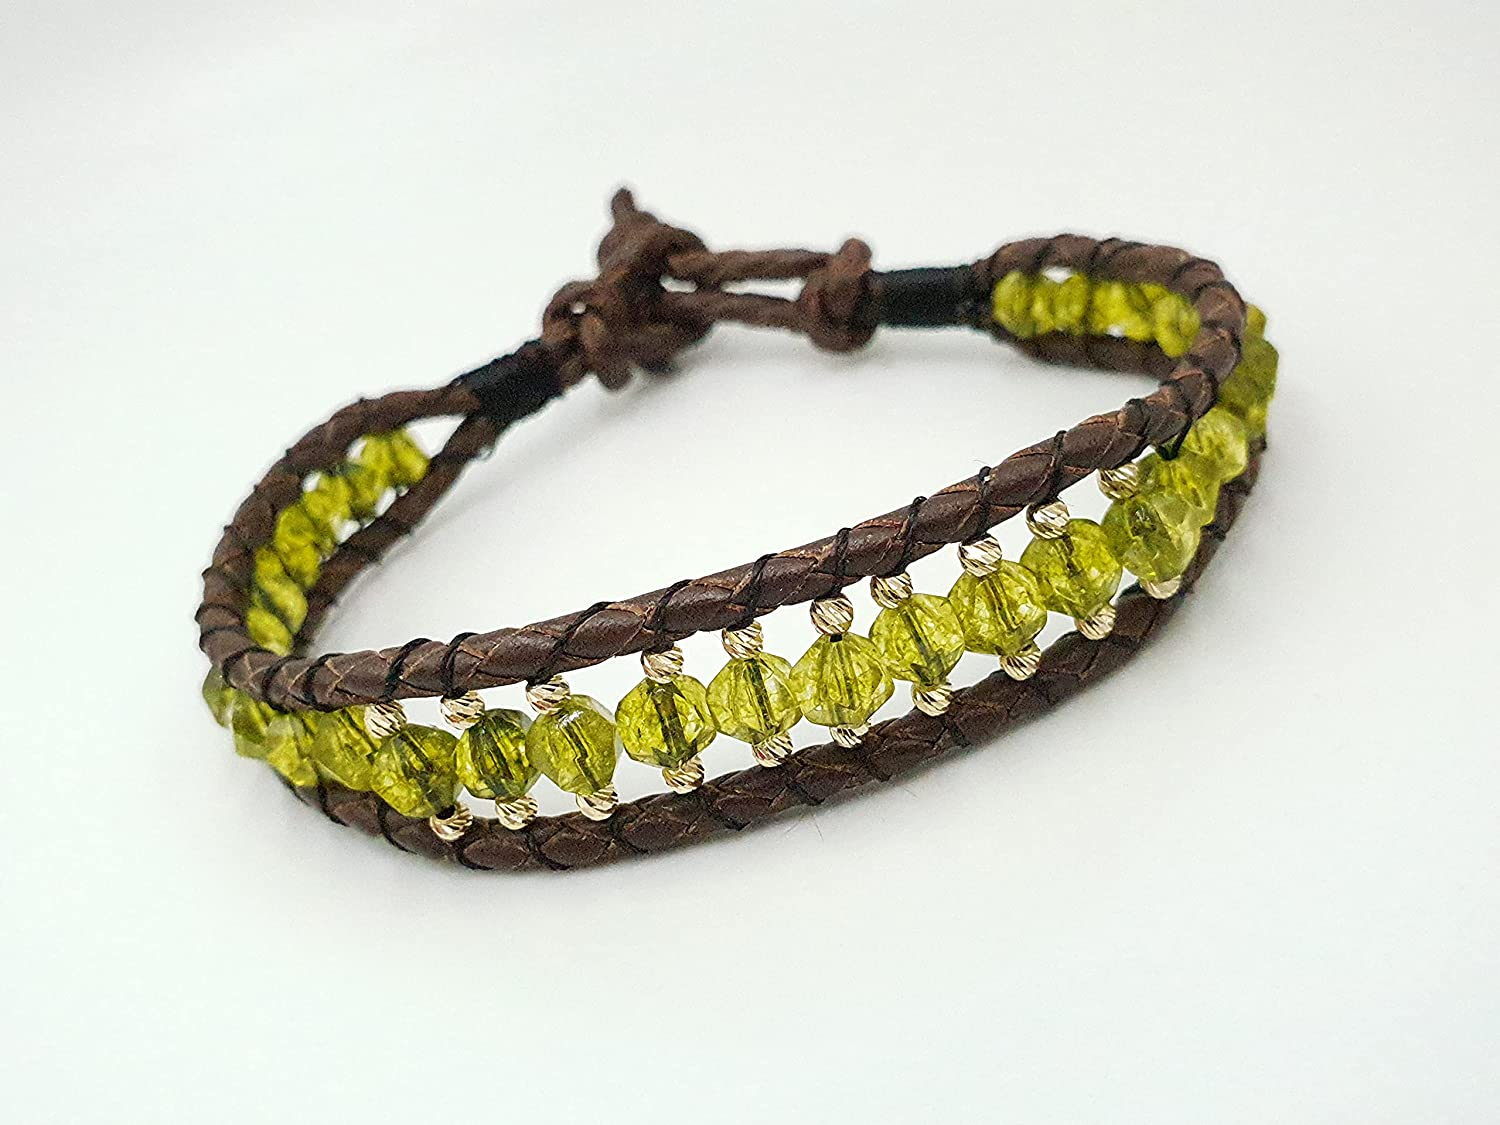 14k Yellow SOLID GOLD Bracelet Limited price and Bracelets SALENEW very popular! Gold Natural Beaded